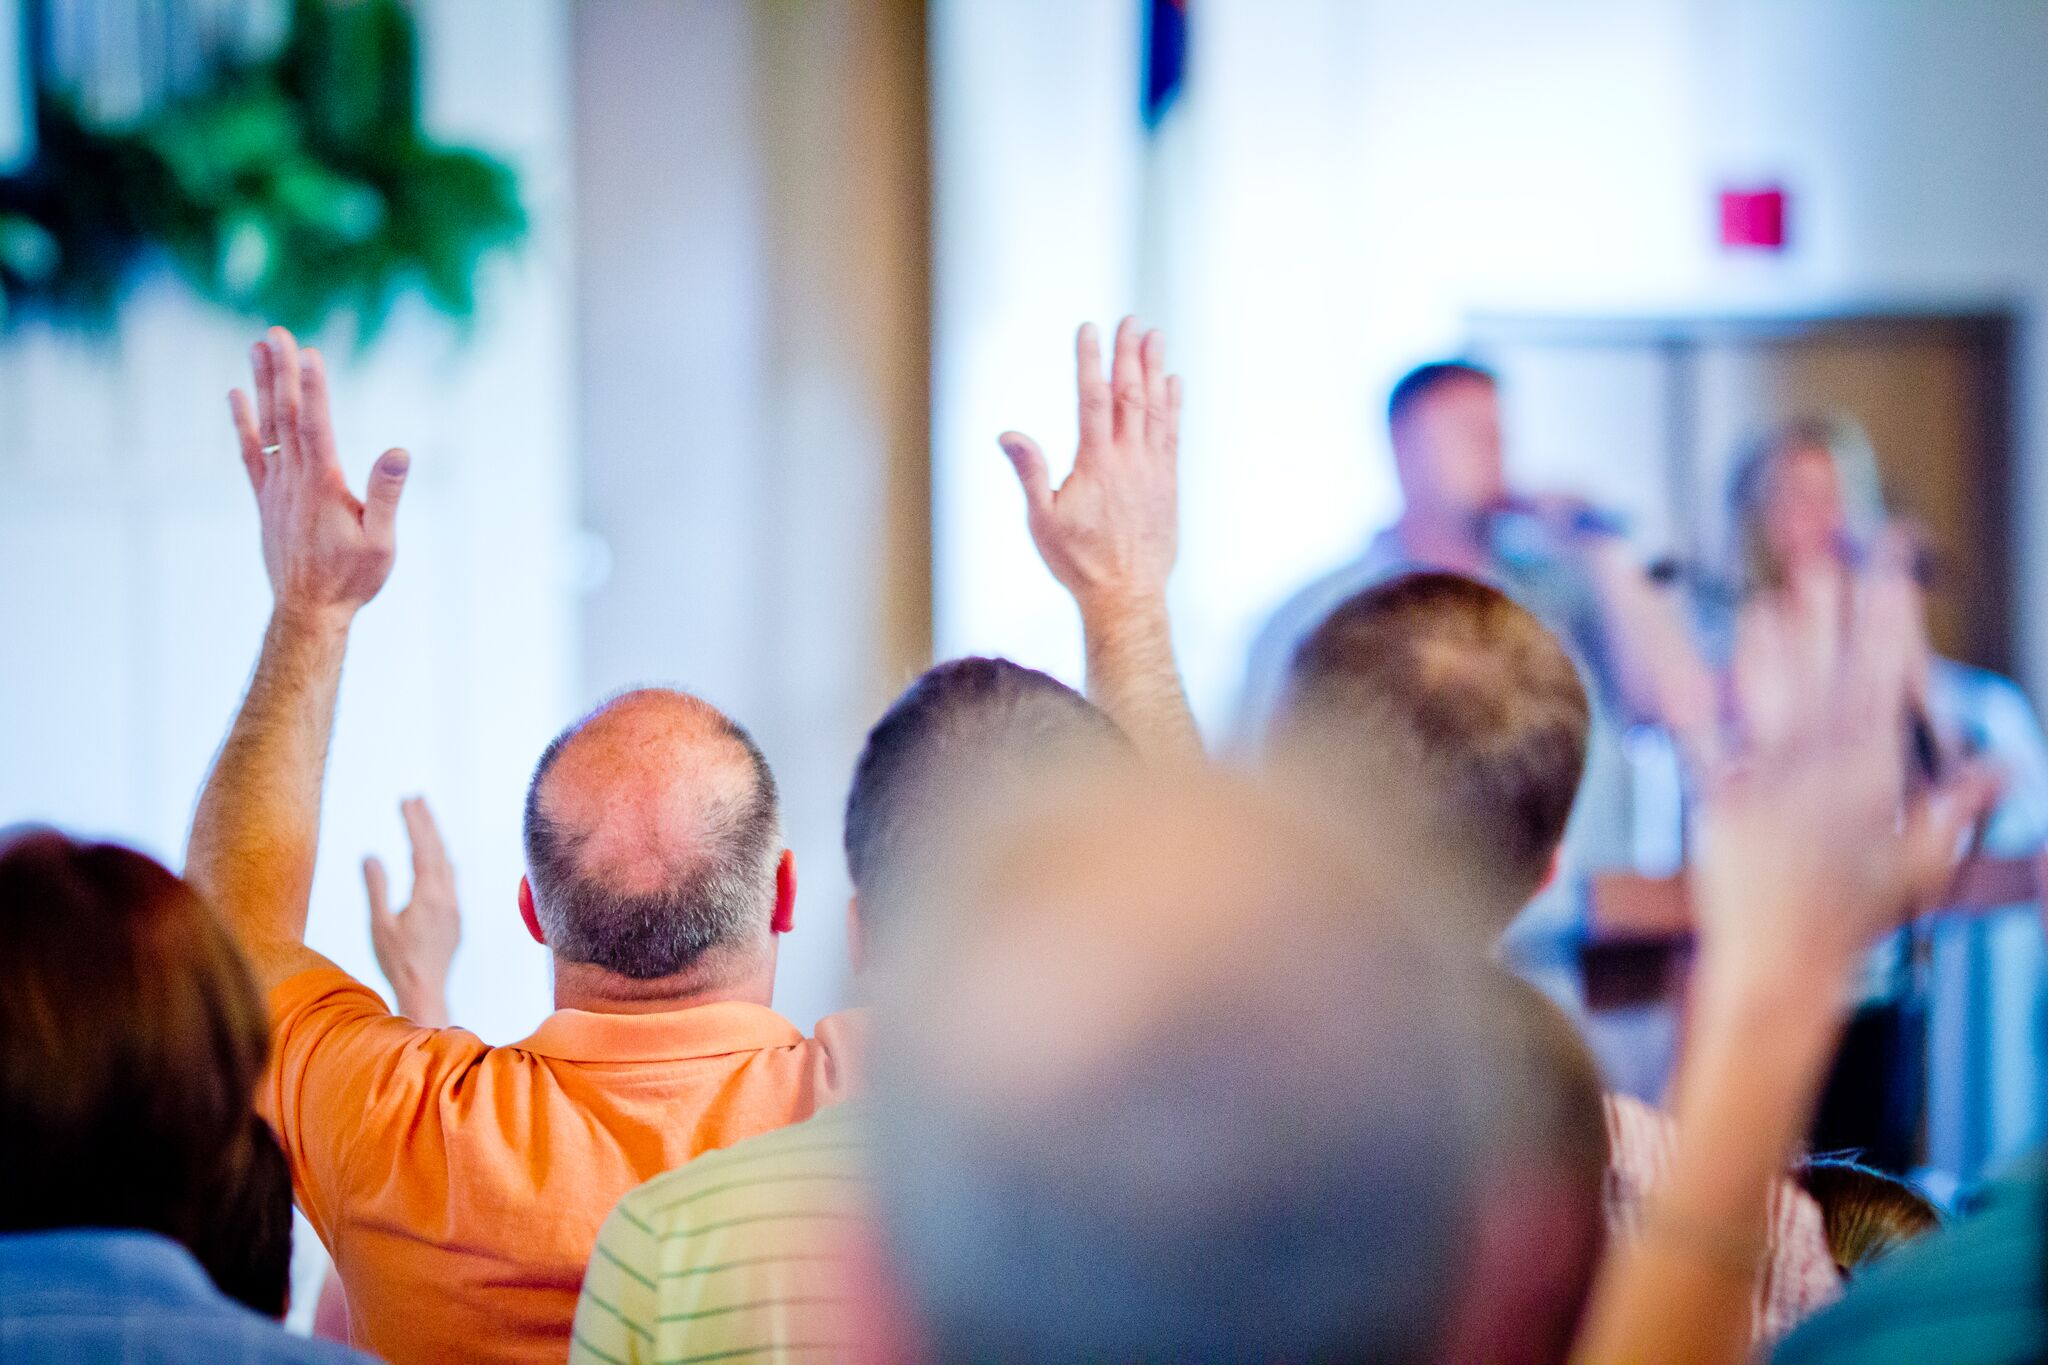 EXALTING CHRIST - Connecting with God through corporate worship in a community setting.